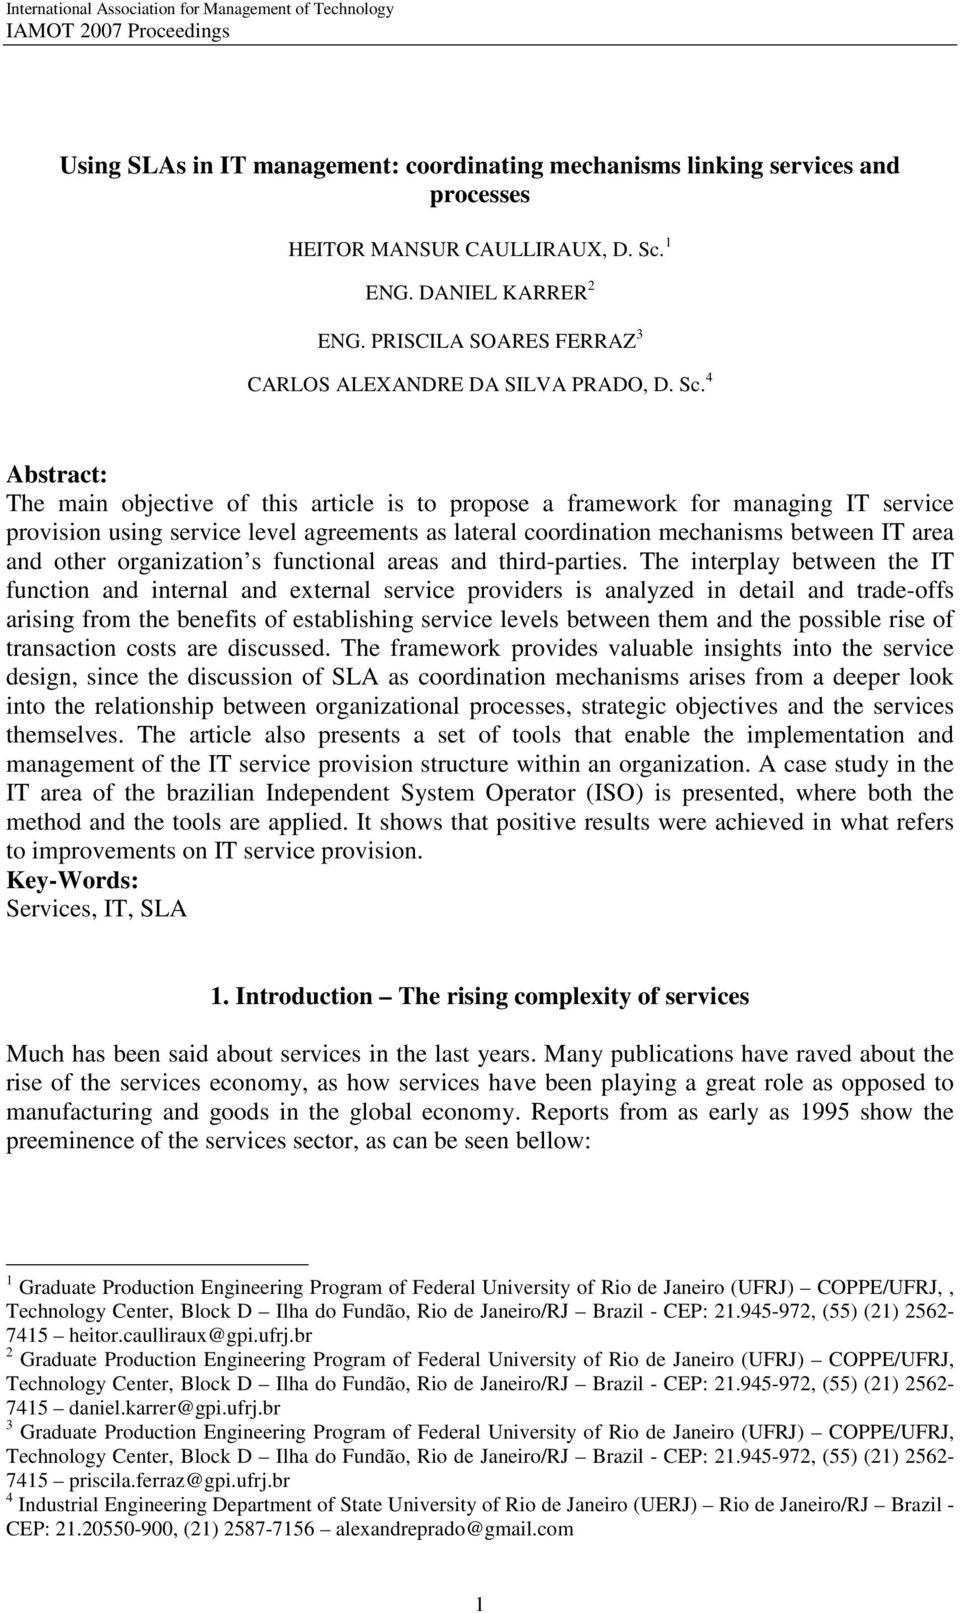 4 Abstract: The main objective of this article is to propose a framework for managing IT service provision using service level agreements as lateral coordination mechanisms between IT area and other